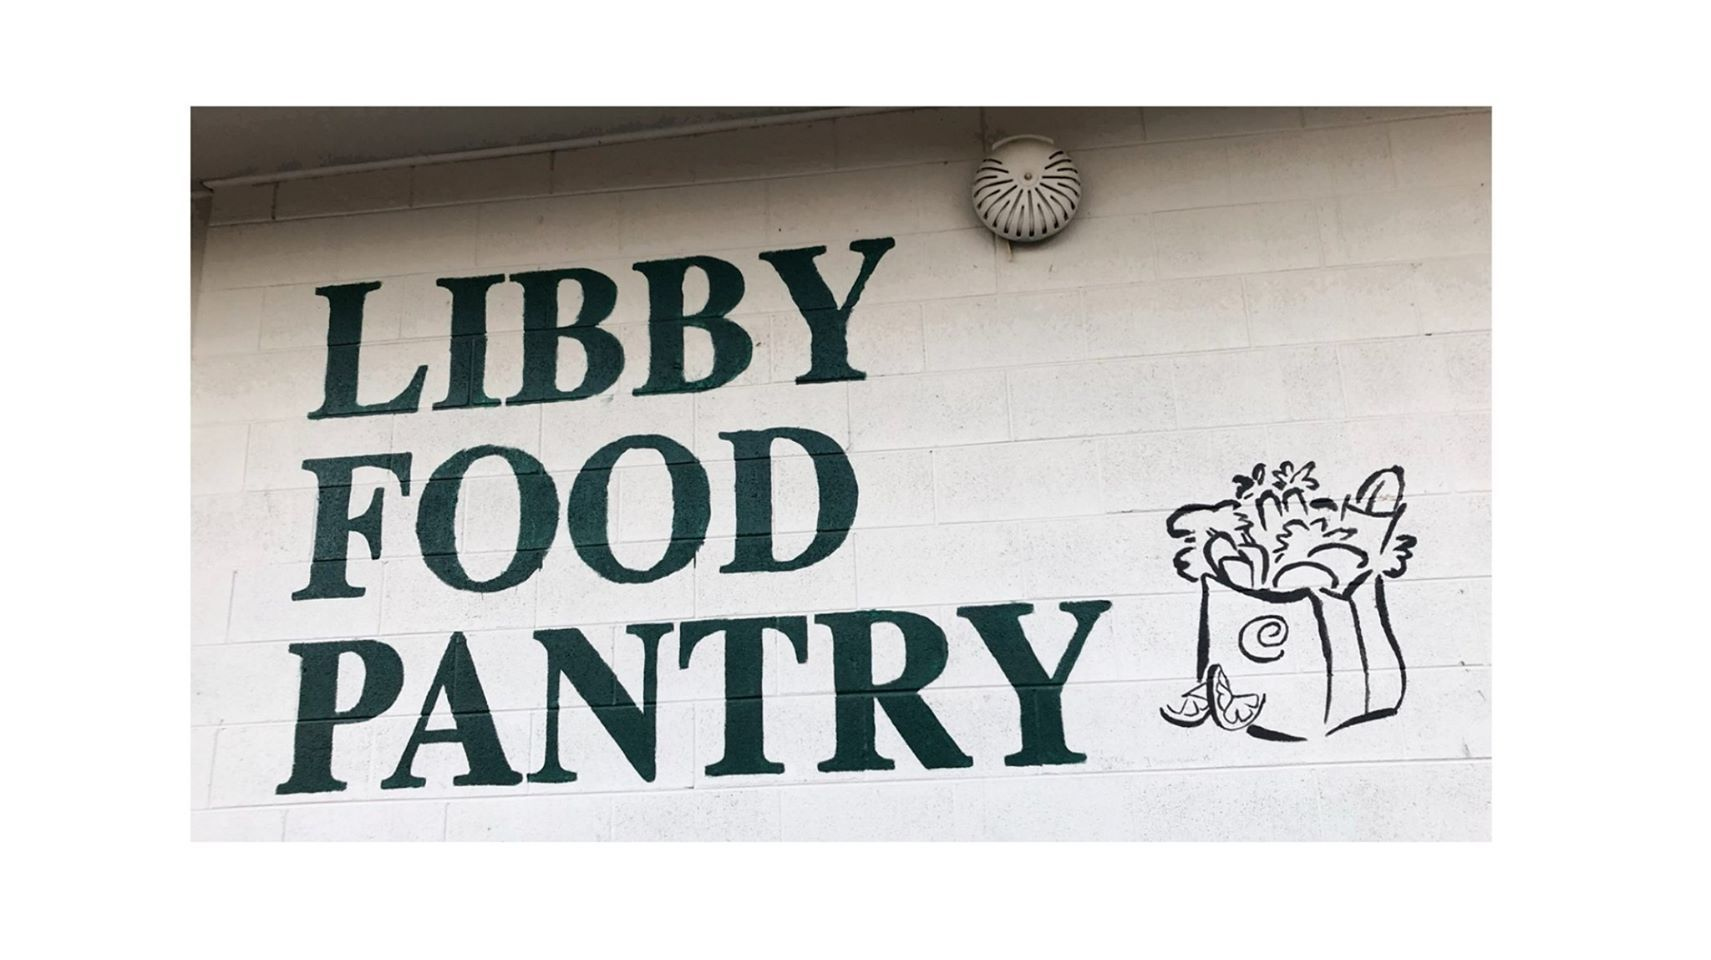 Libby Food Pantry